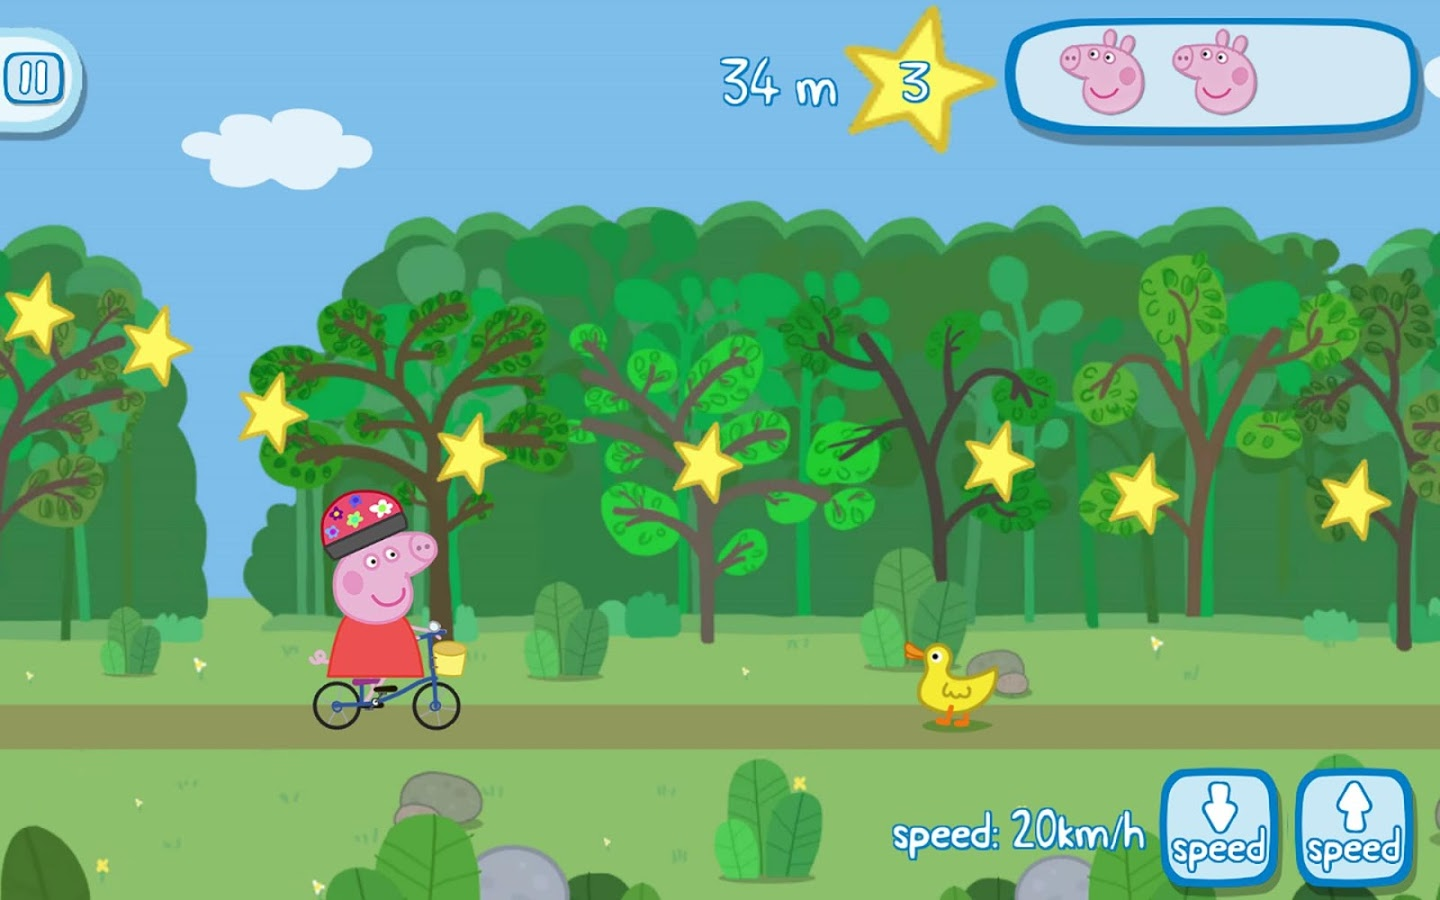 Peppas Bicycle PRO Features